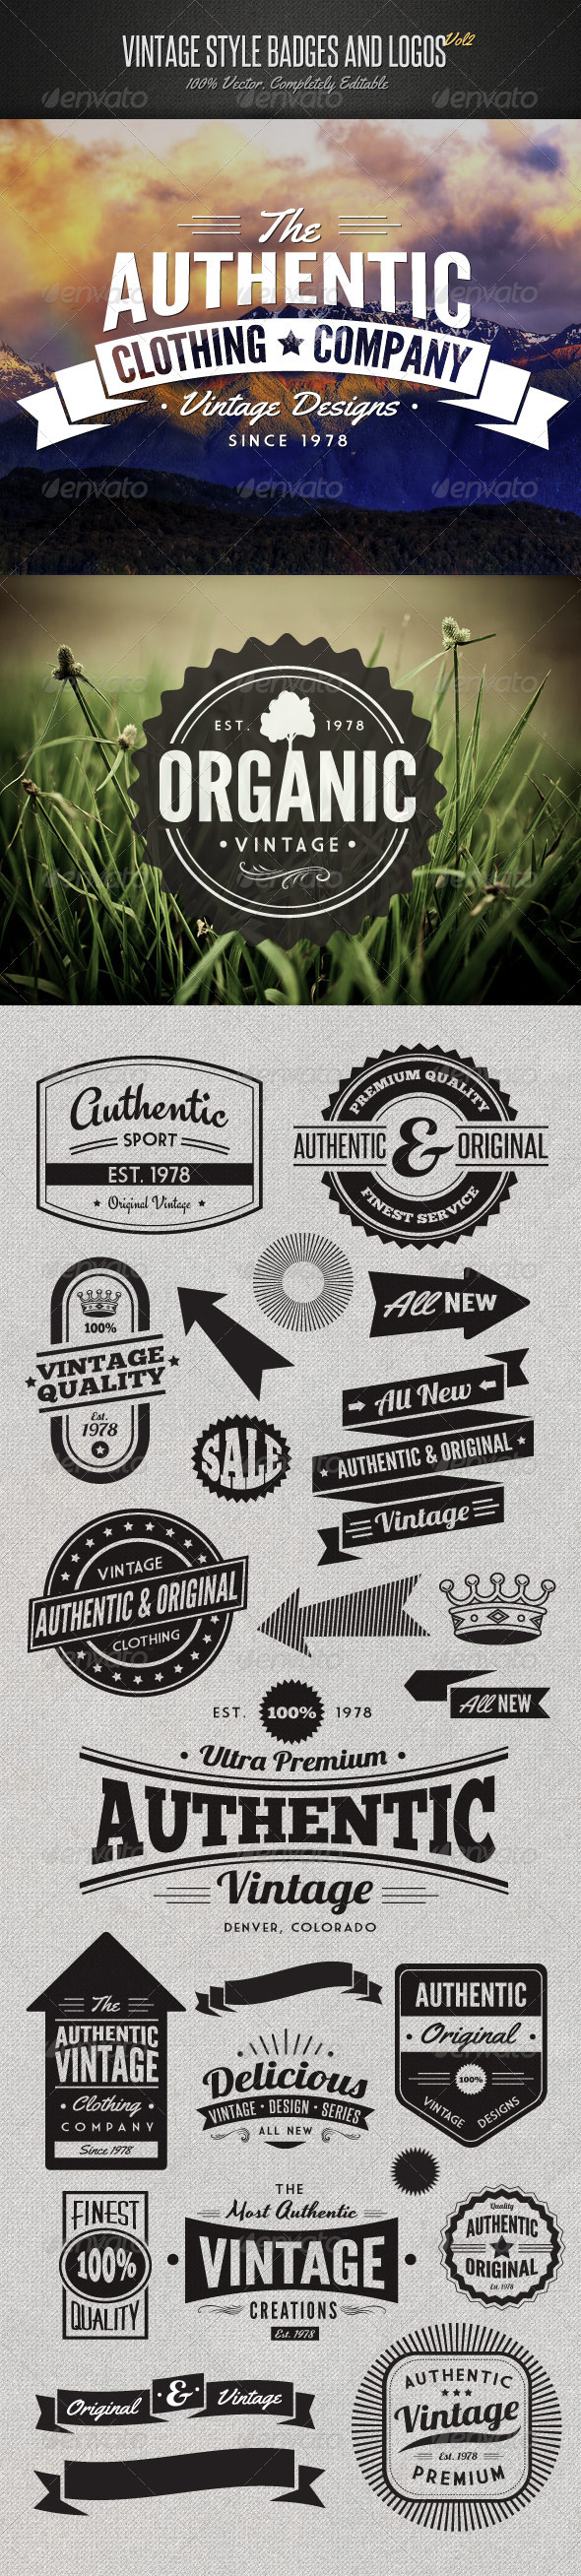 GraphicRiver Vintage Style Badges and Logos Vol 2 3759471